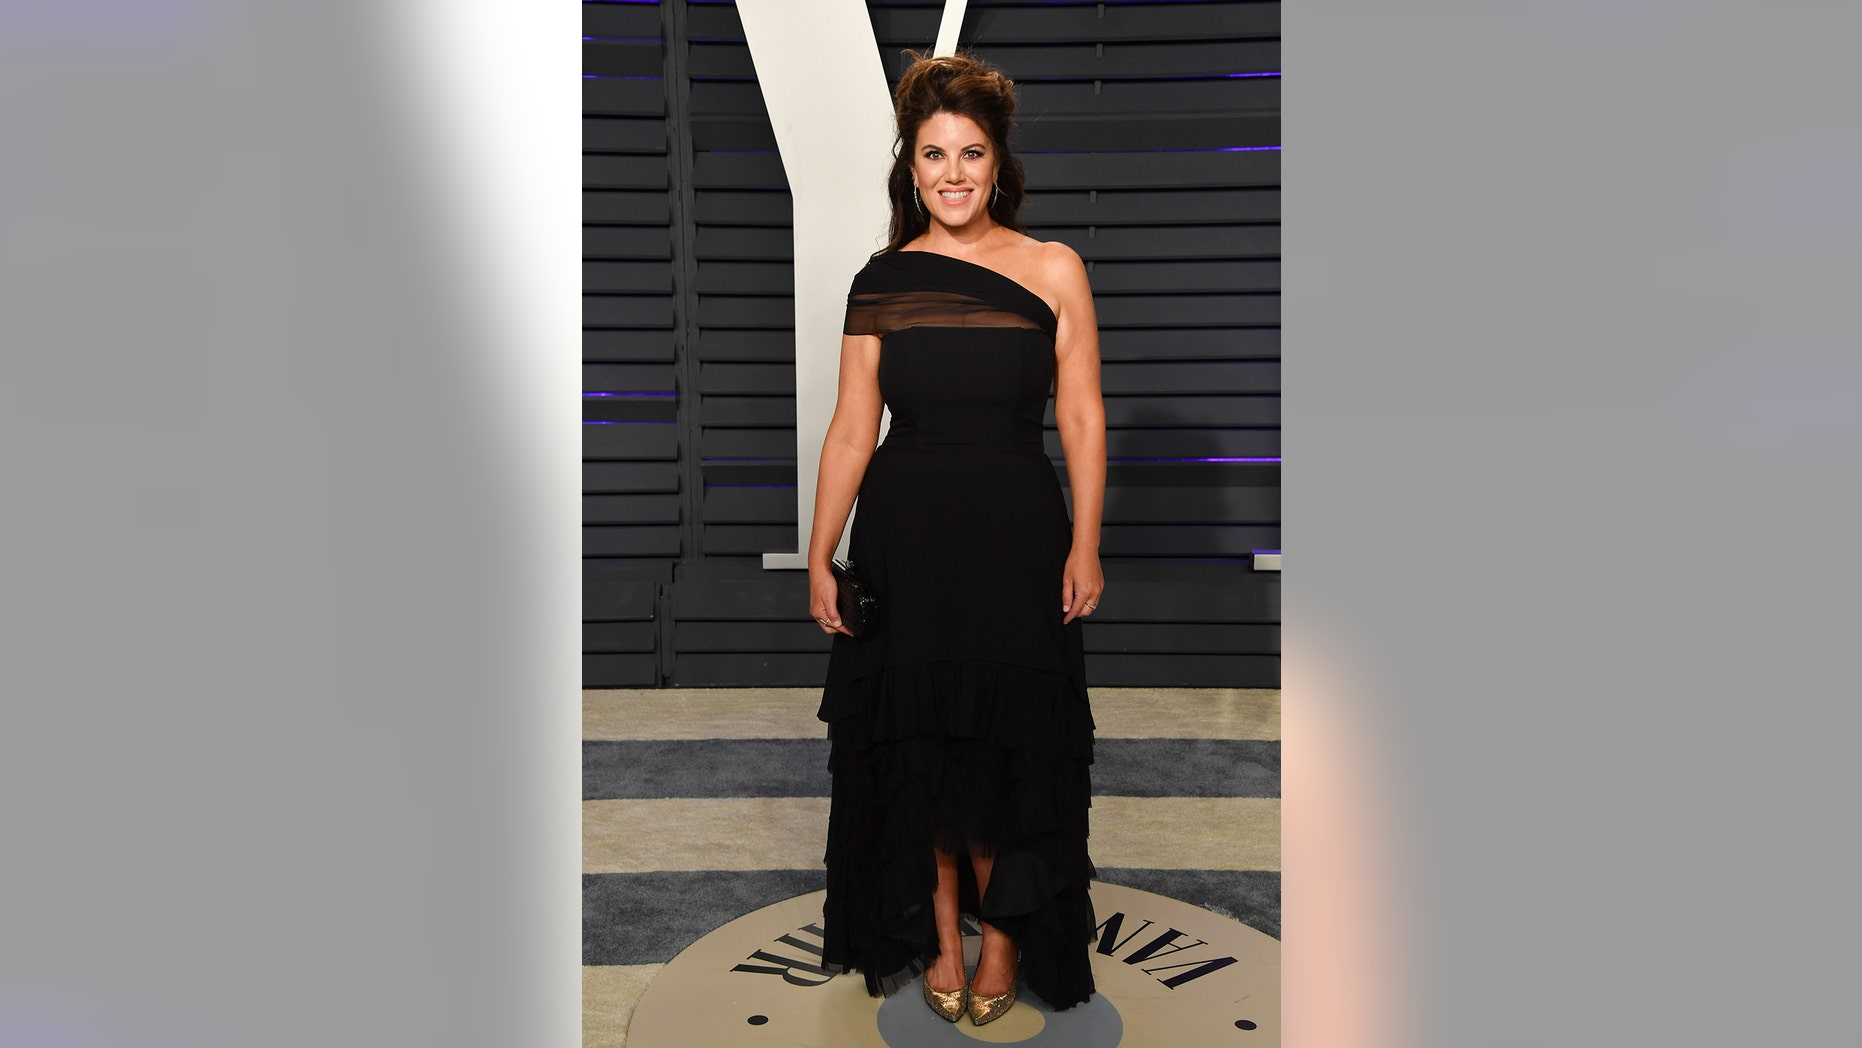 BEVERLY HILLS, CALIFORNIA - FEBRUARY 24: Monica Lewinsky attends the 2019 Vanity Fair Oscar Party hosted by Radhika Jones at Wallis Annenberg Center for the Performing Arts on February 24, 2019 in Beverly Hills, California.